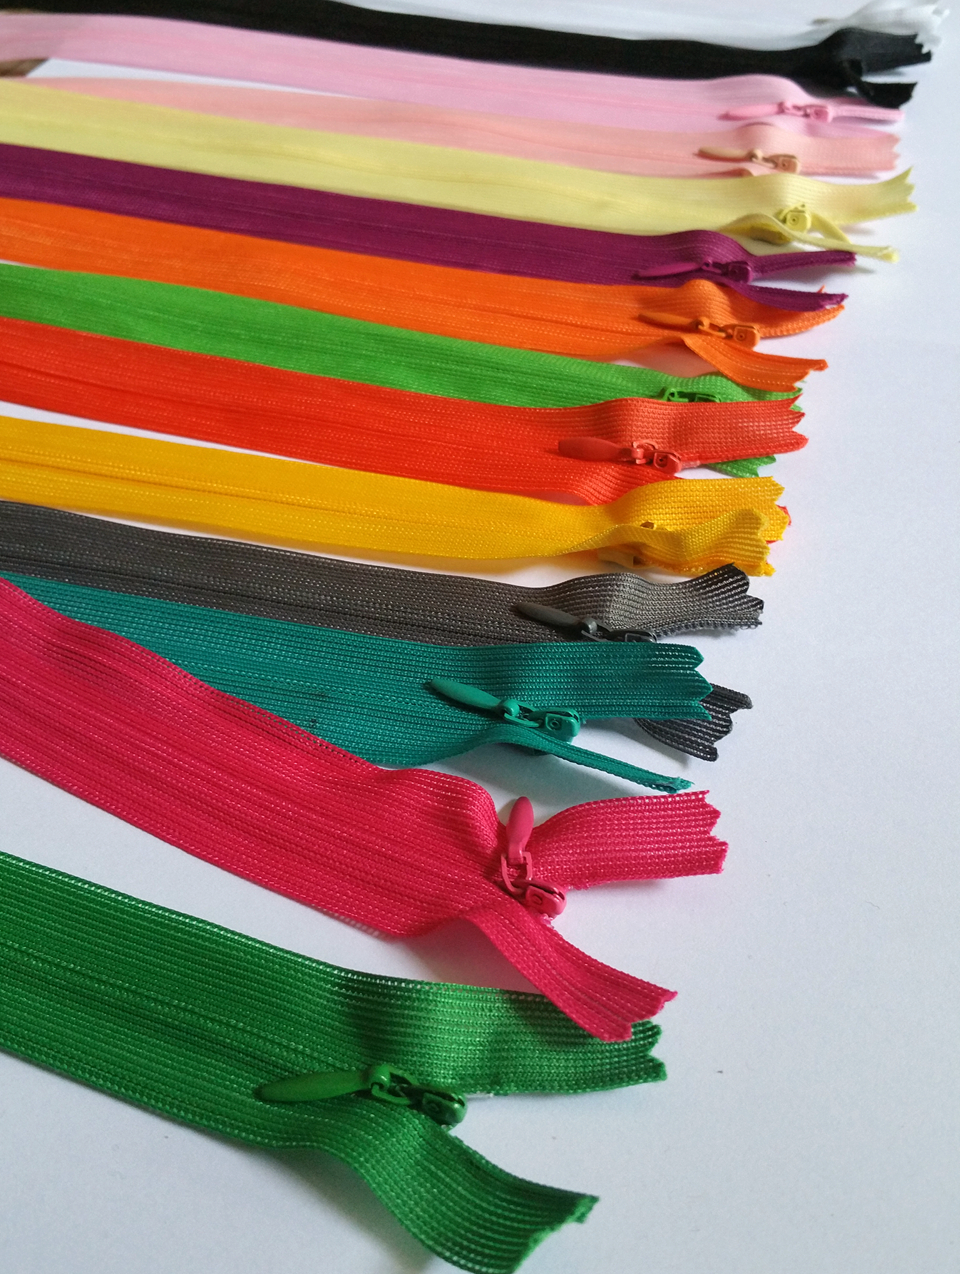 Zipper sewing zippers for dress sewing supplies polyester yarn 28cm